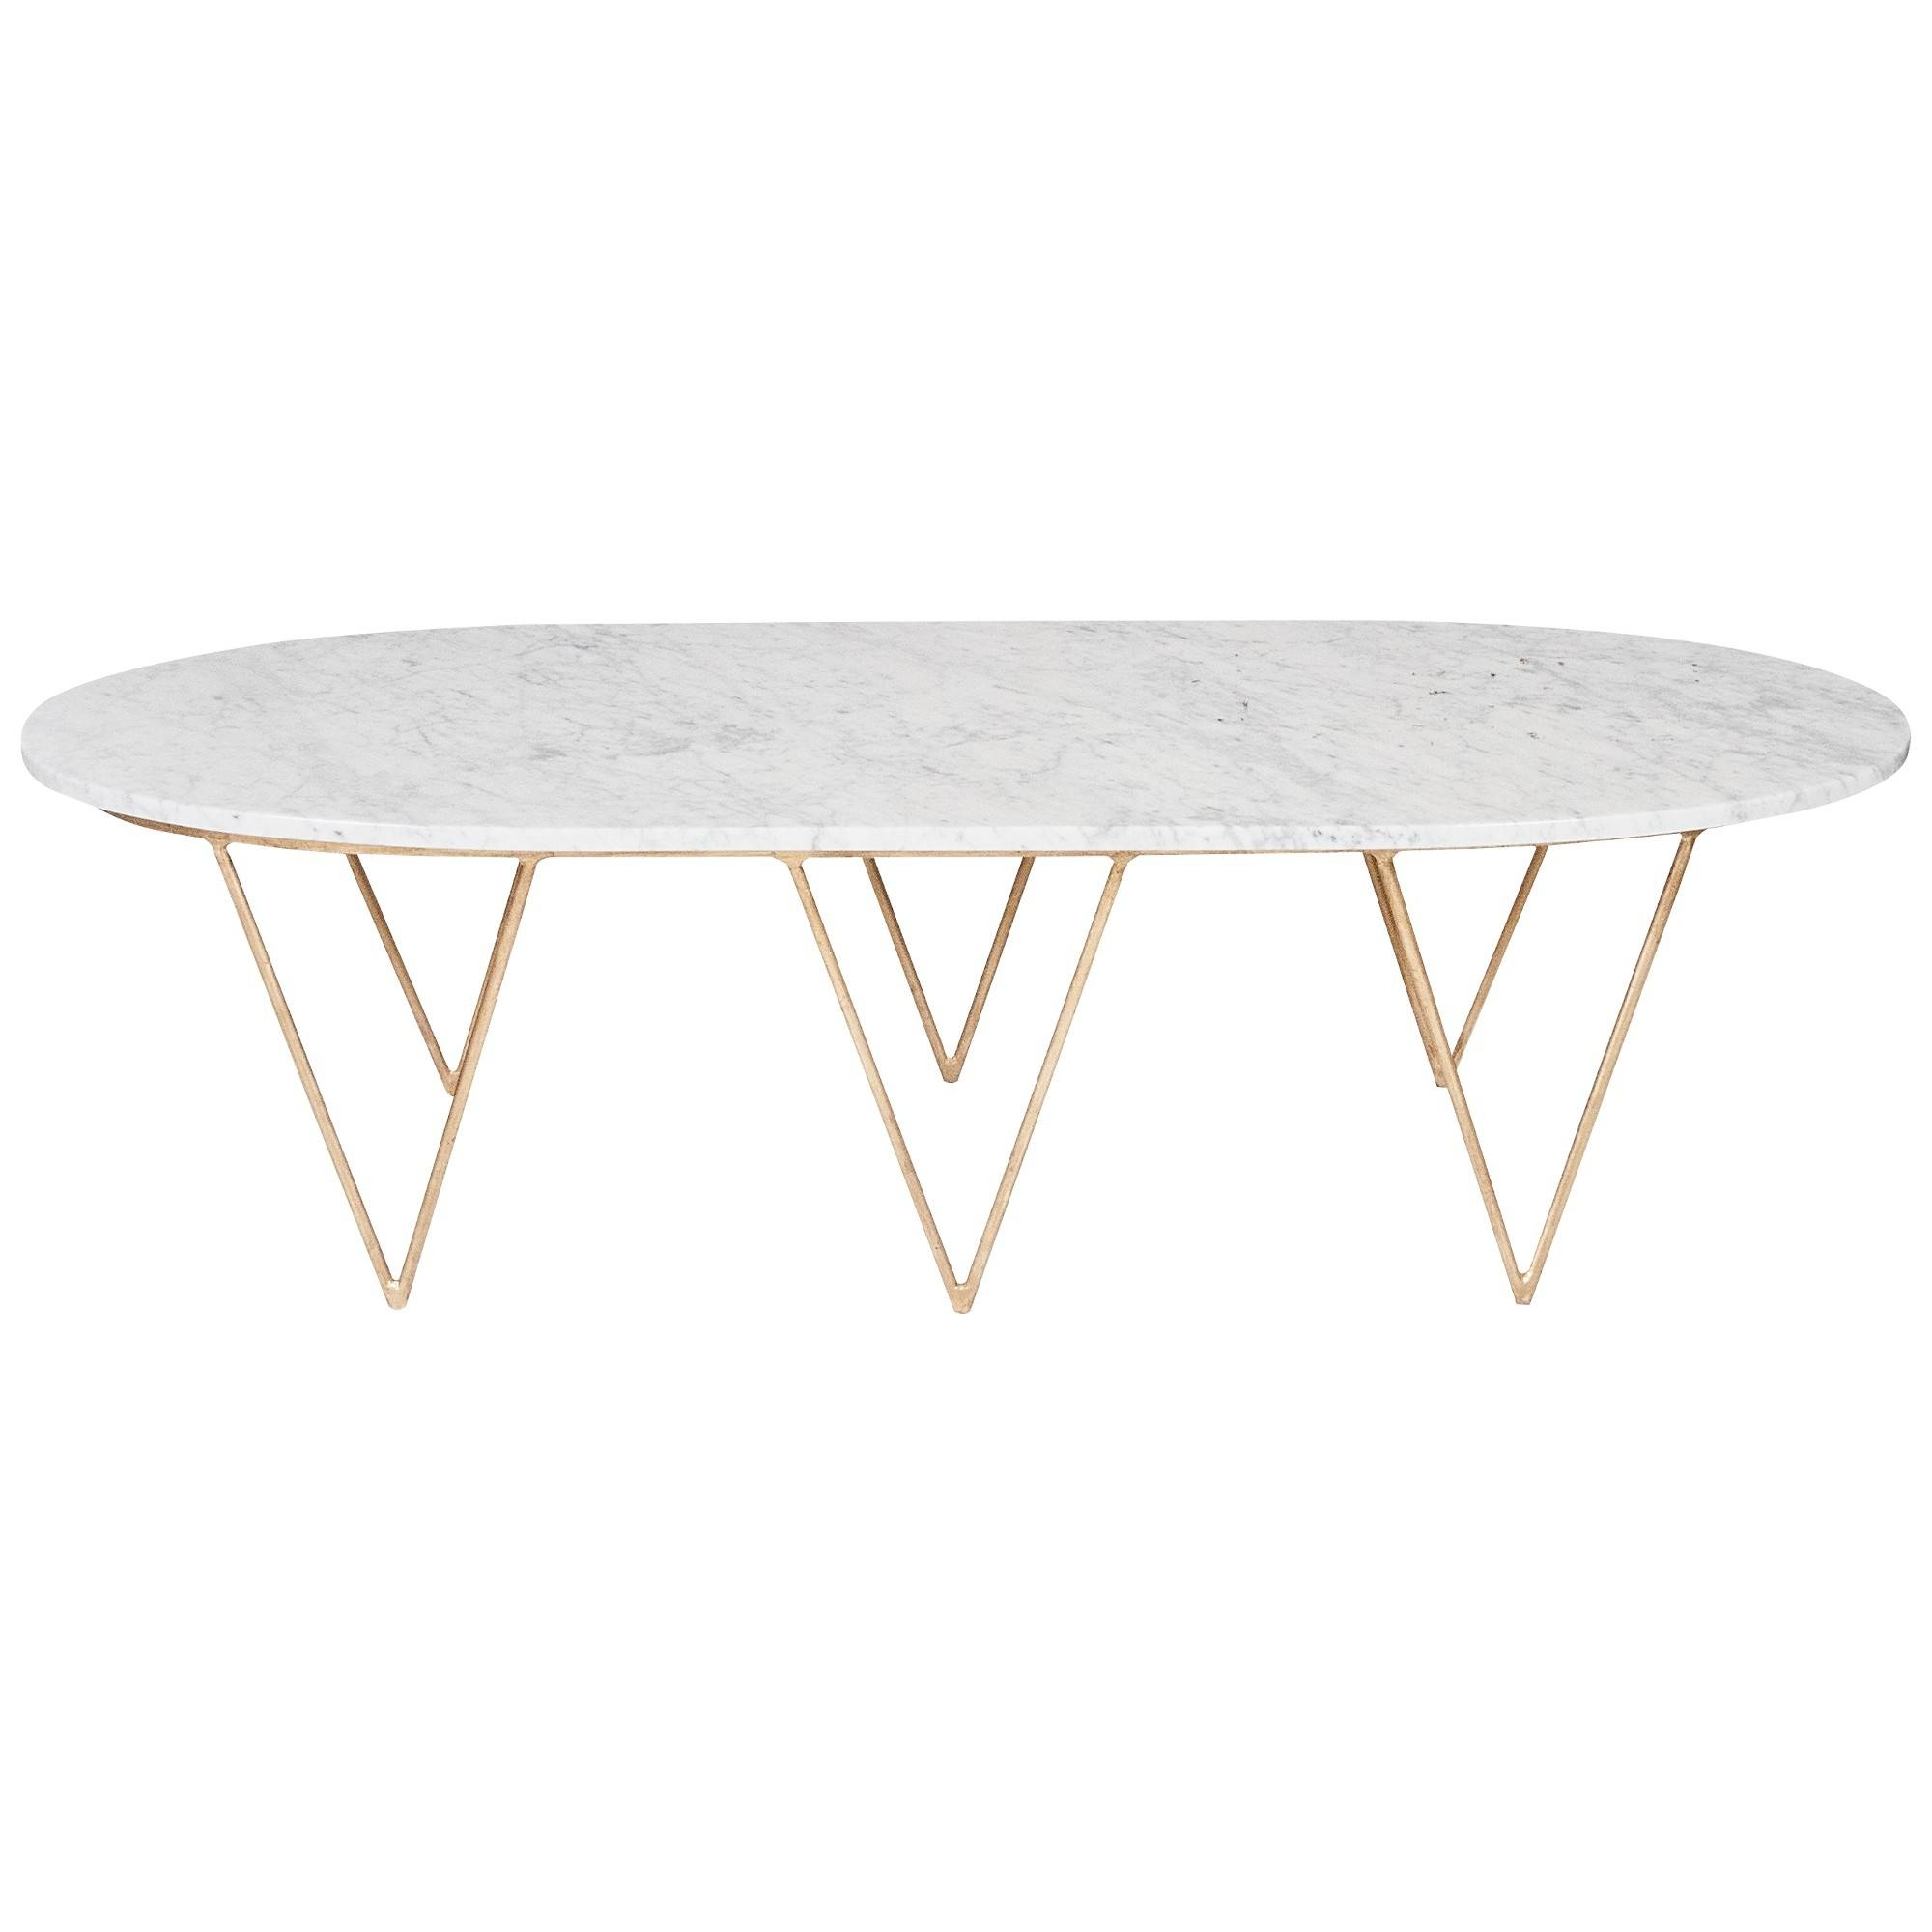 Worlds Away Surf Coffee Table With White Marble Top | Candelabra, Inc. in Oval White Coffee Tables (Image 30 of 30)